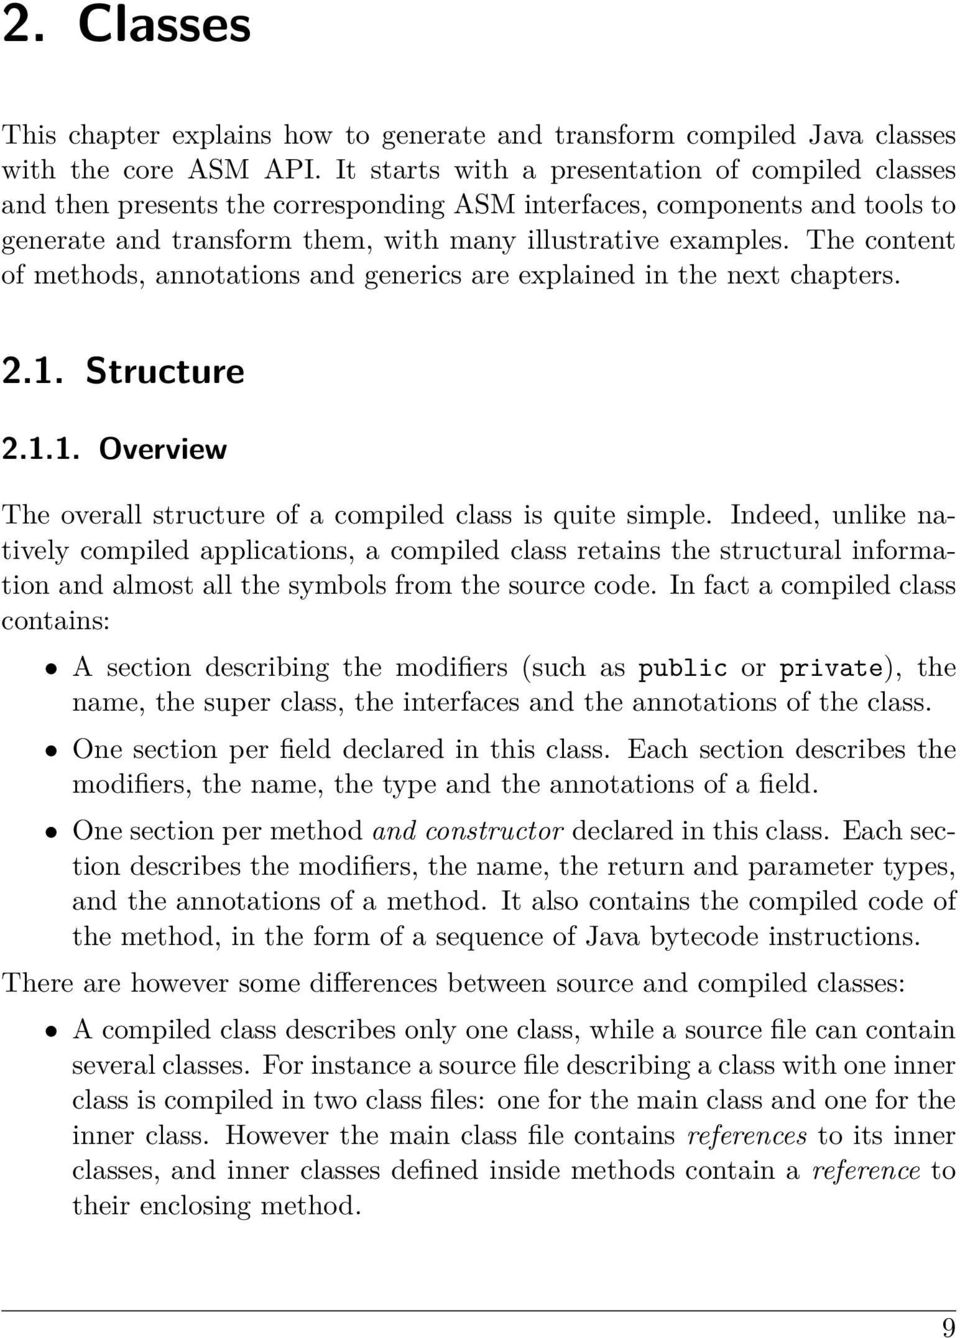 interface org.objectweb.asm.classvisitor as super class